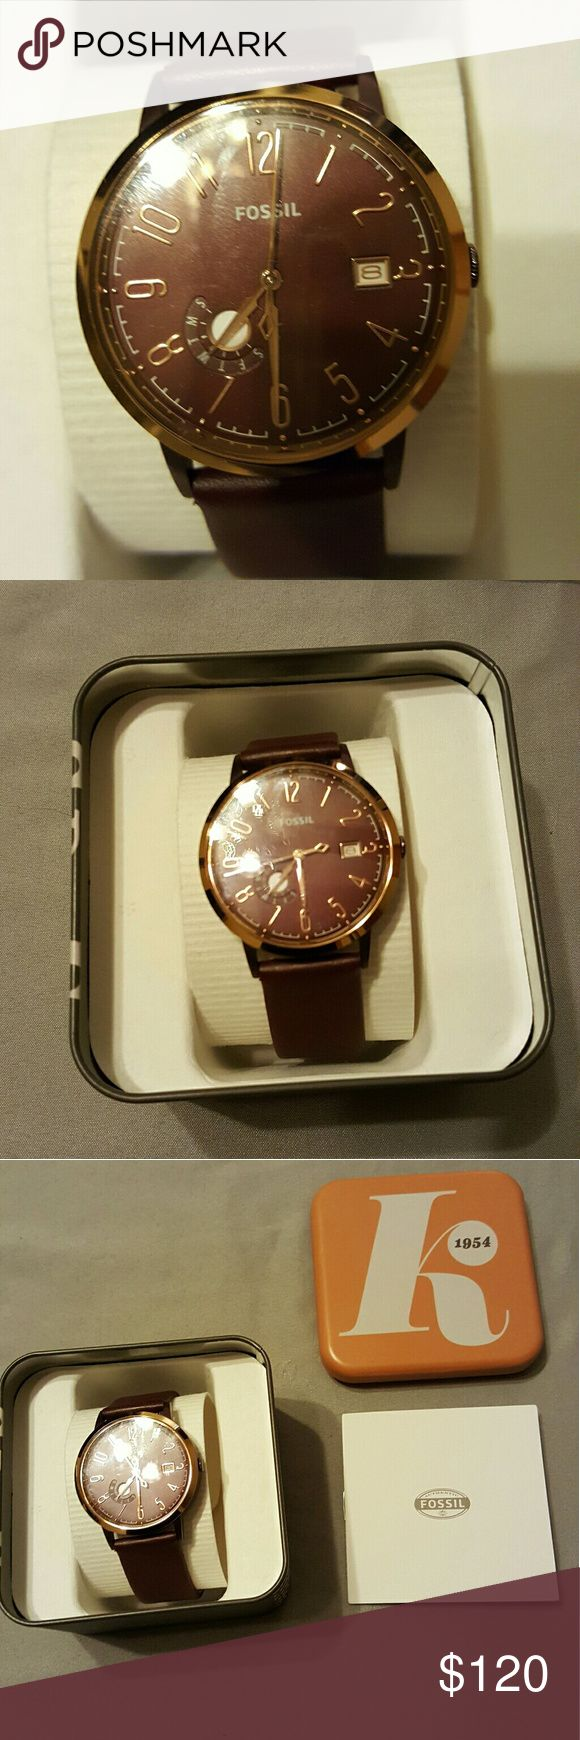 Fossil ladies watch Brand new leather Fossil watch Fossil Other